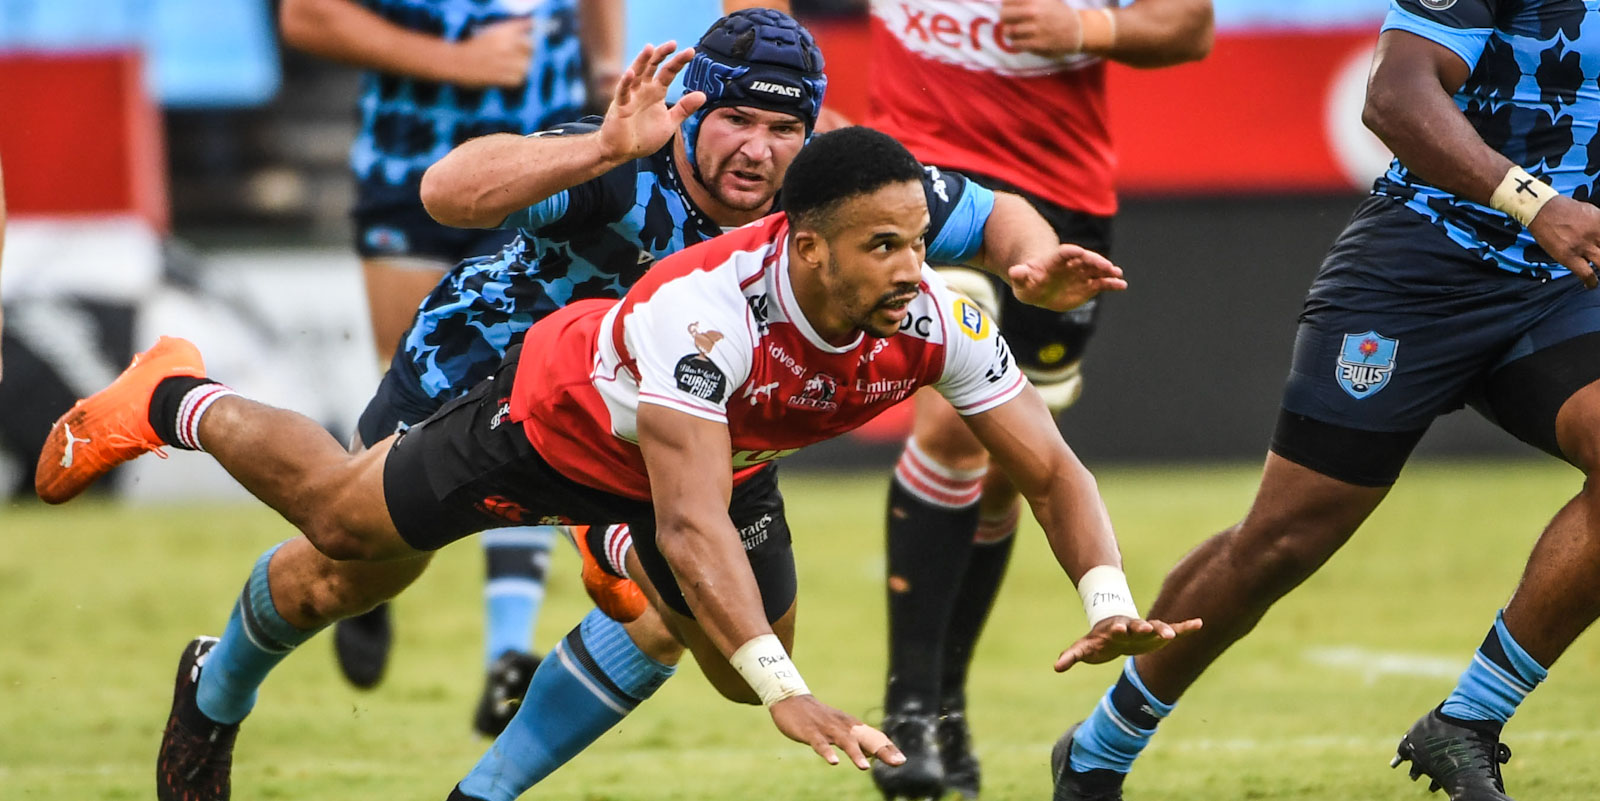 Carling Currie Cup semi-final kick-off times announced